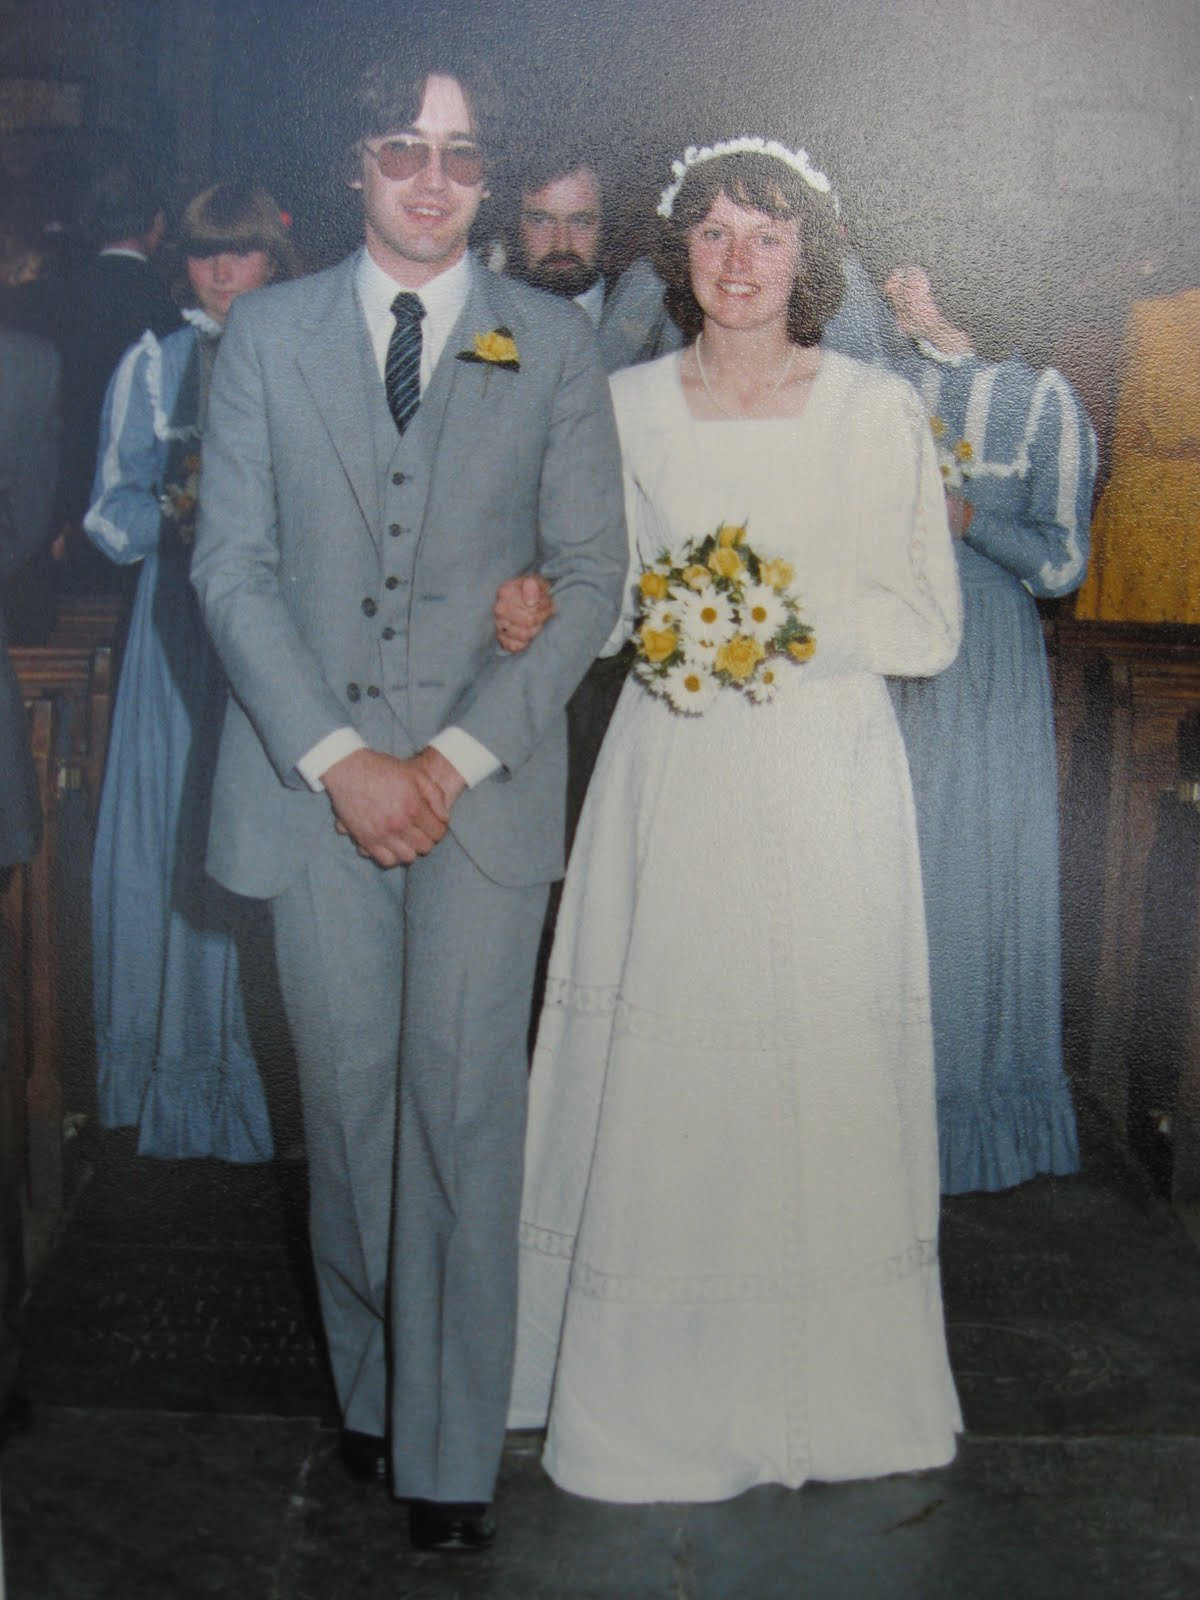 vintage weddings laura ashley wedding dresses I really hope I can look as elegant as these brides on my big day Which dress is your favourite 20s 30s 50s or 70s